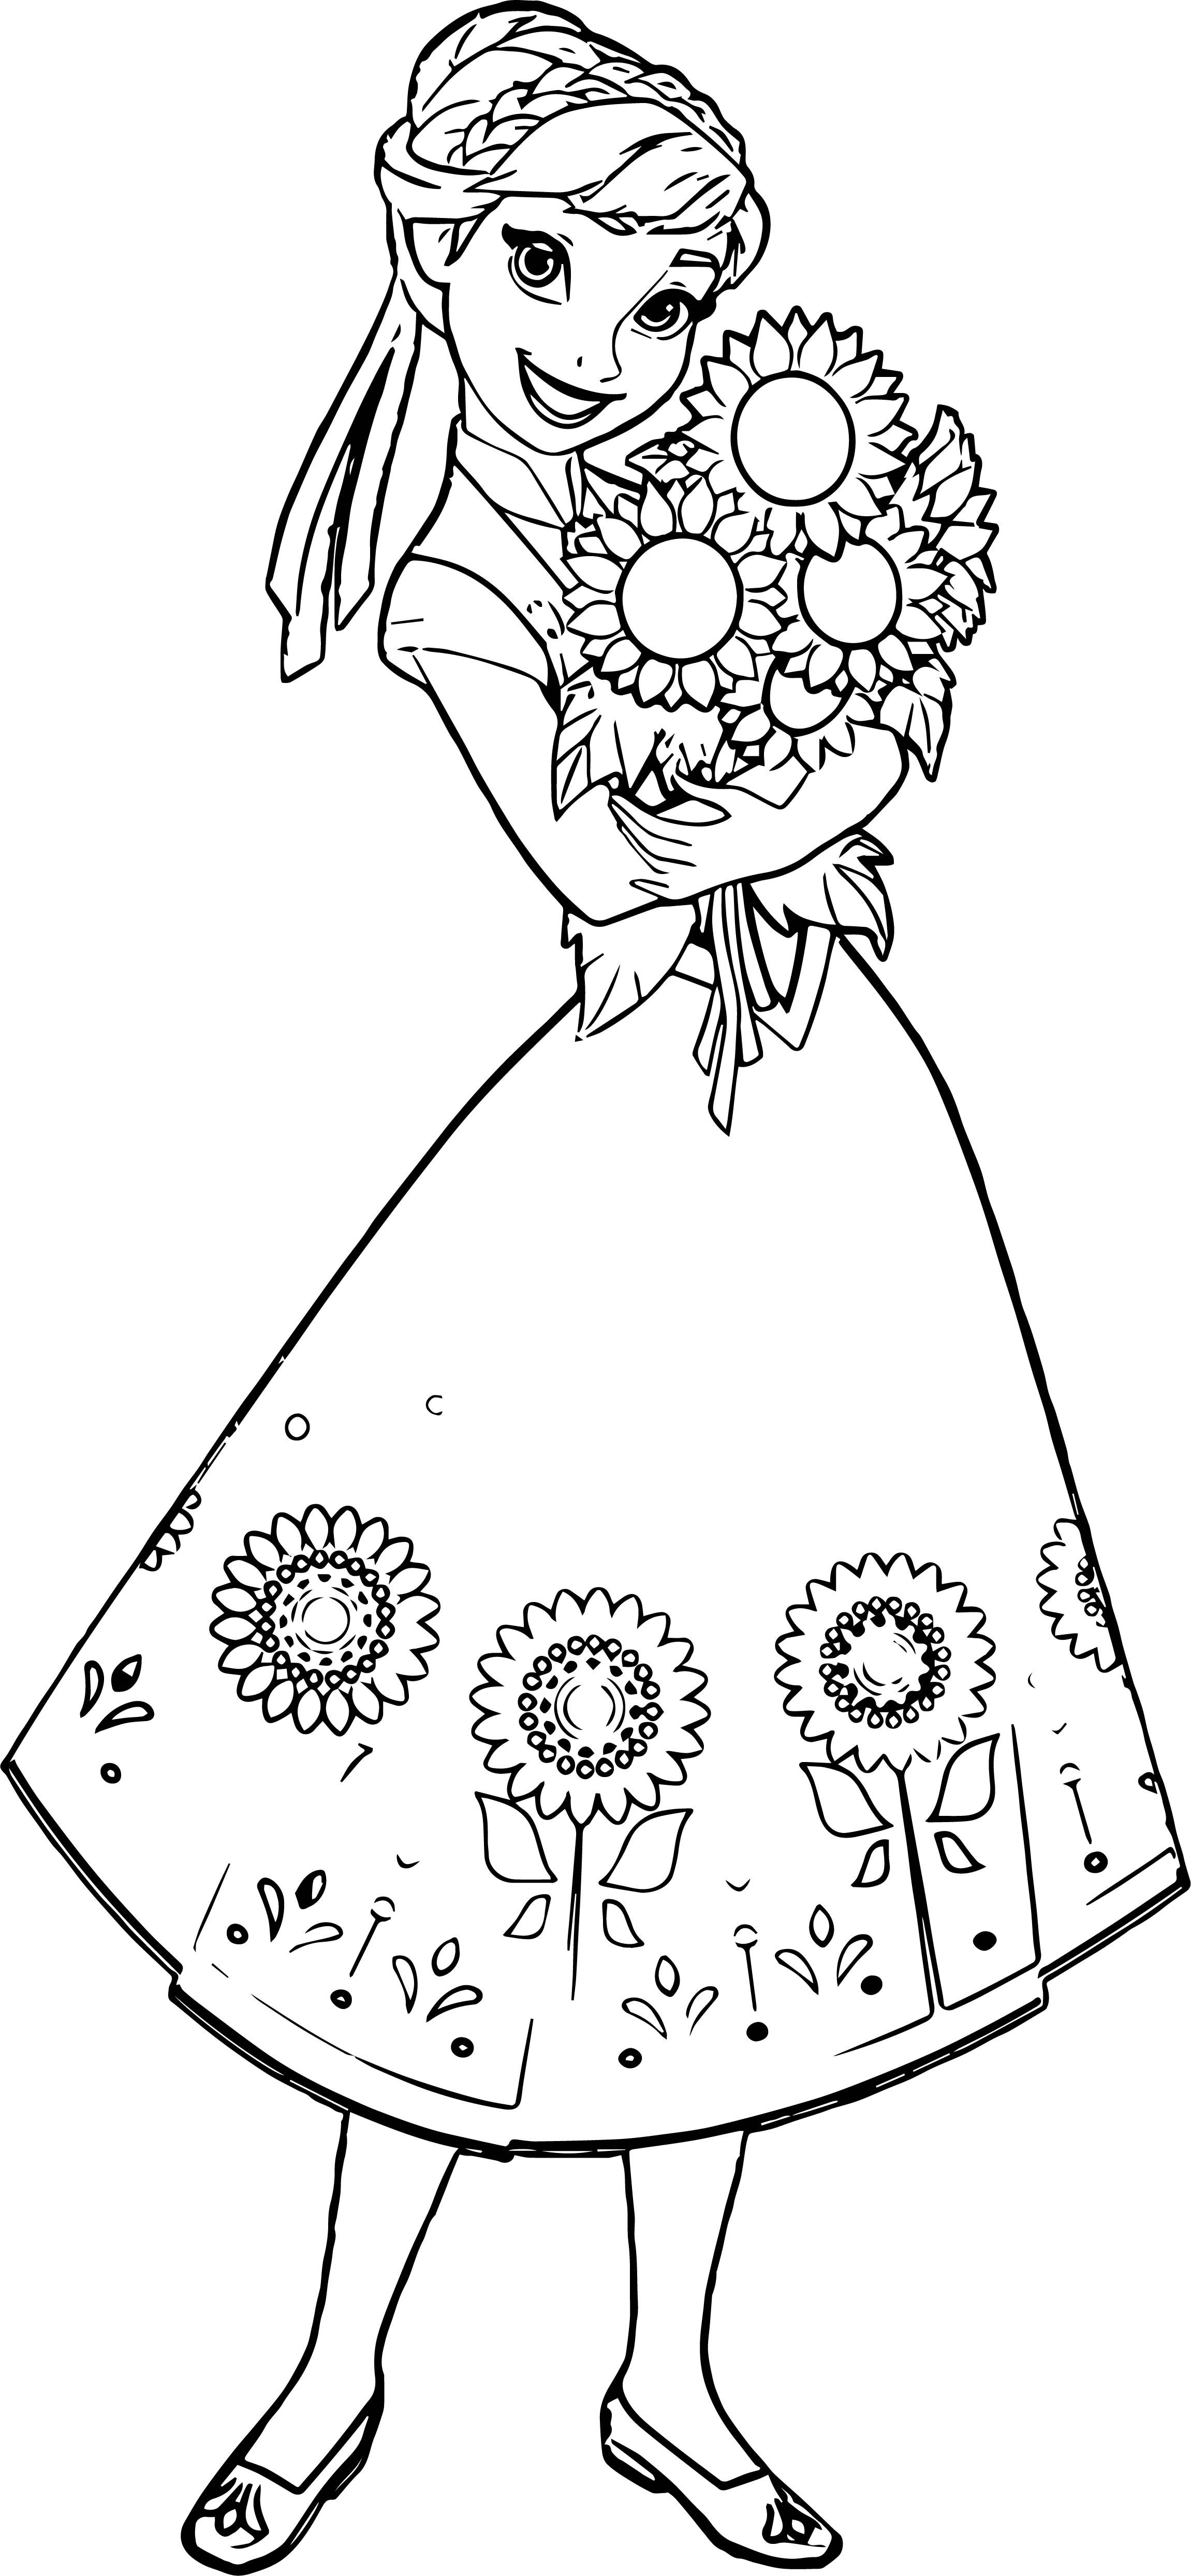 Nice Fever Anna Sunflowers Coloring Page Elsa Coloring Pages Frozen Coloring Pages Sunflower Coloring Pages